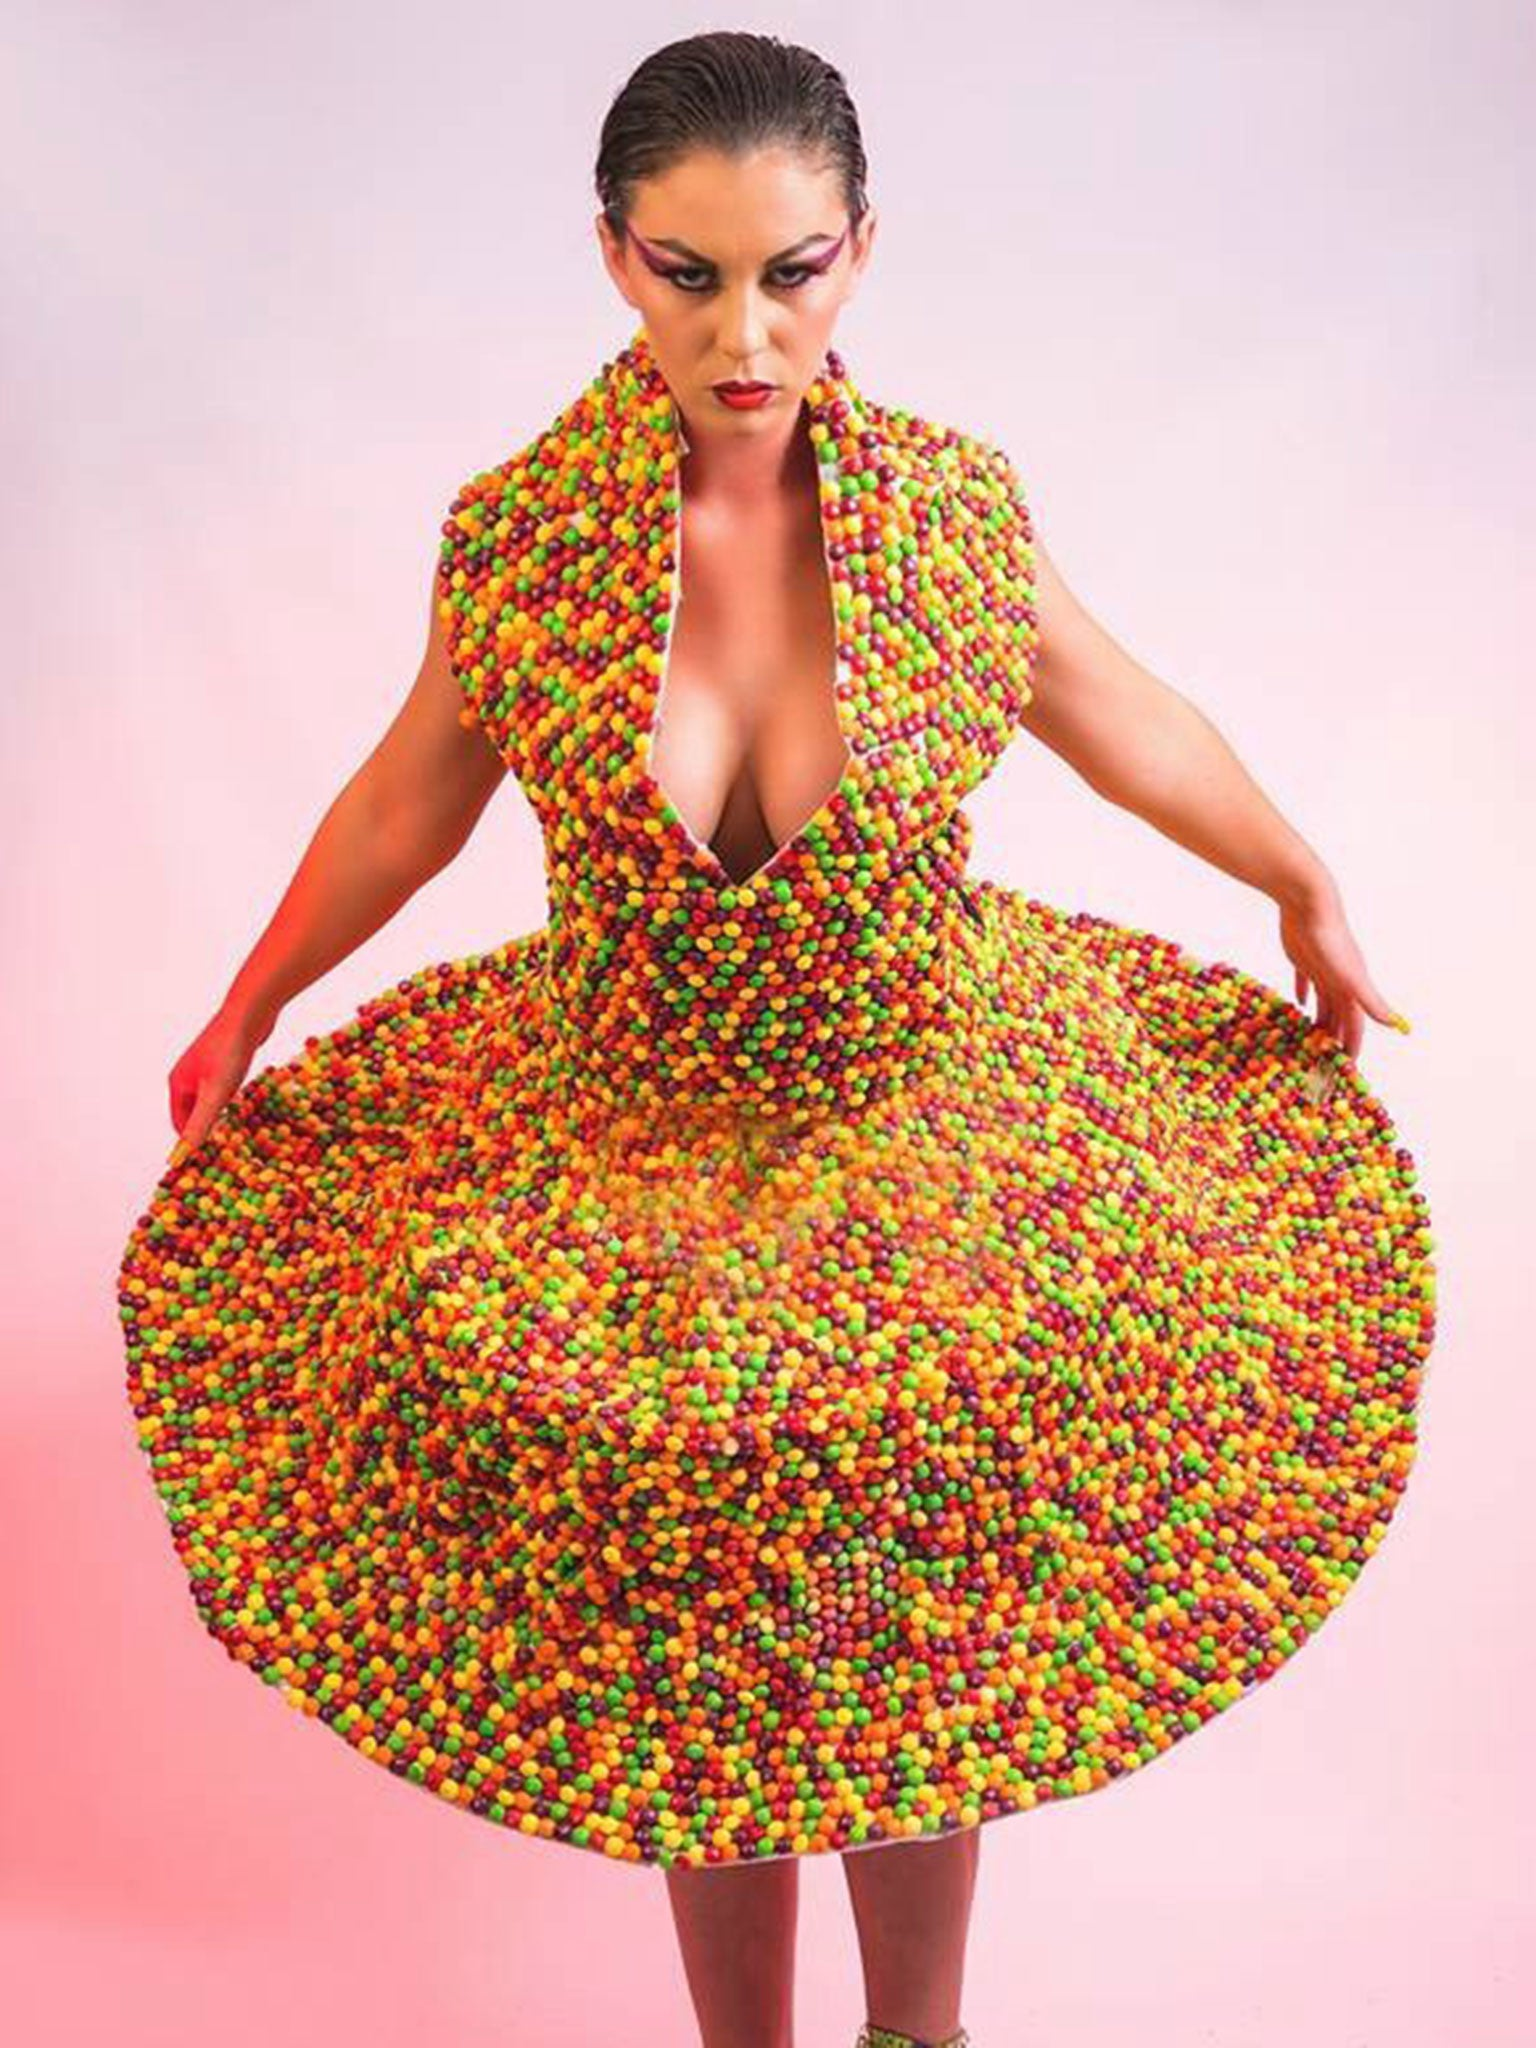 The World S First Skittles Dress Made Of 3 000 Sweets